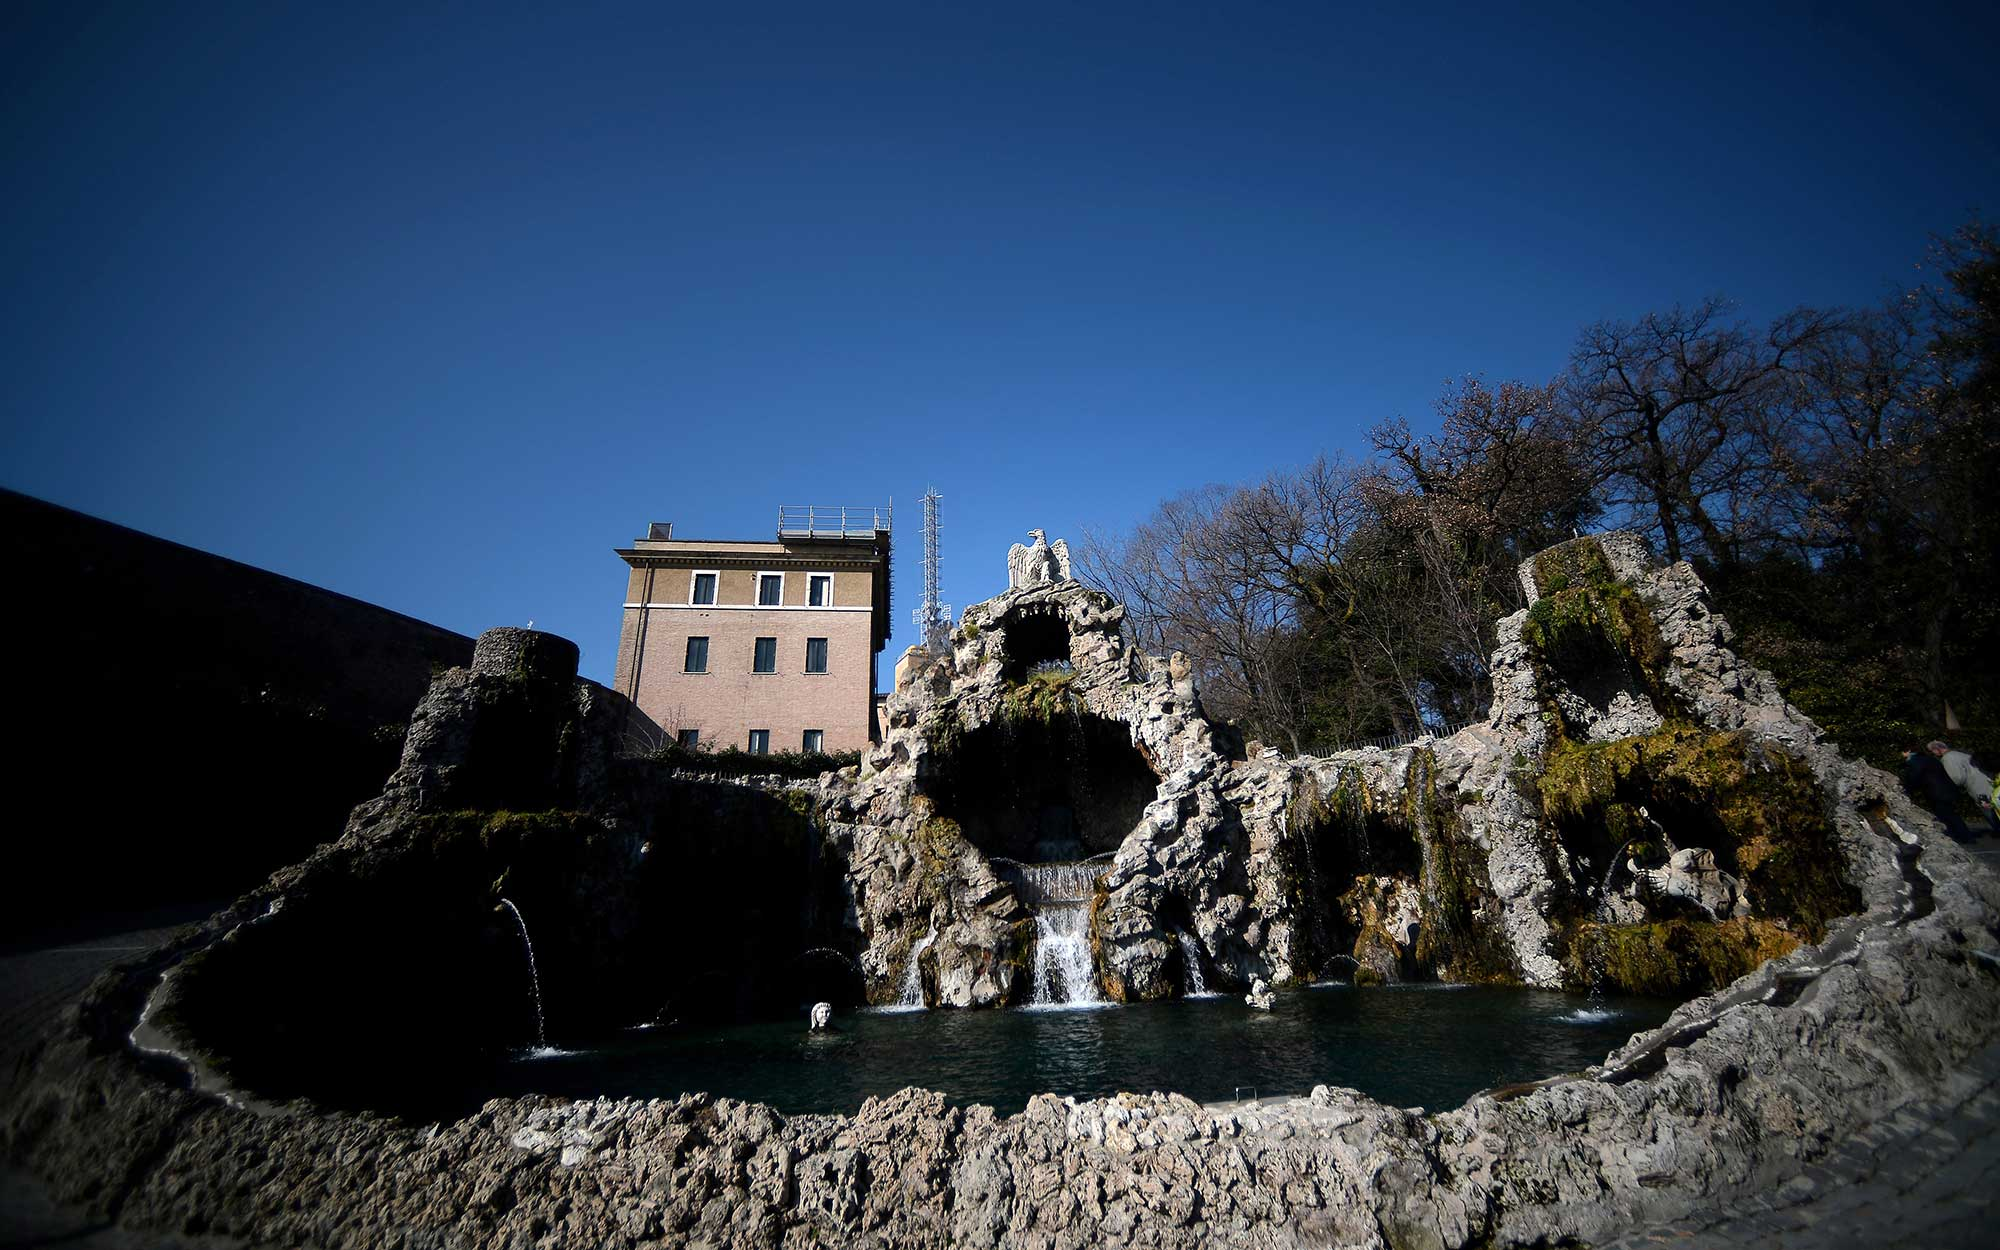 12 Roman Fountains That Will Make You Want to Book a Flight: Fontana dell'Aquilone